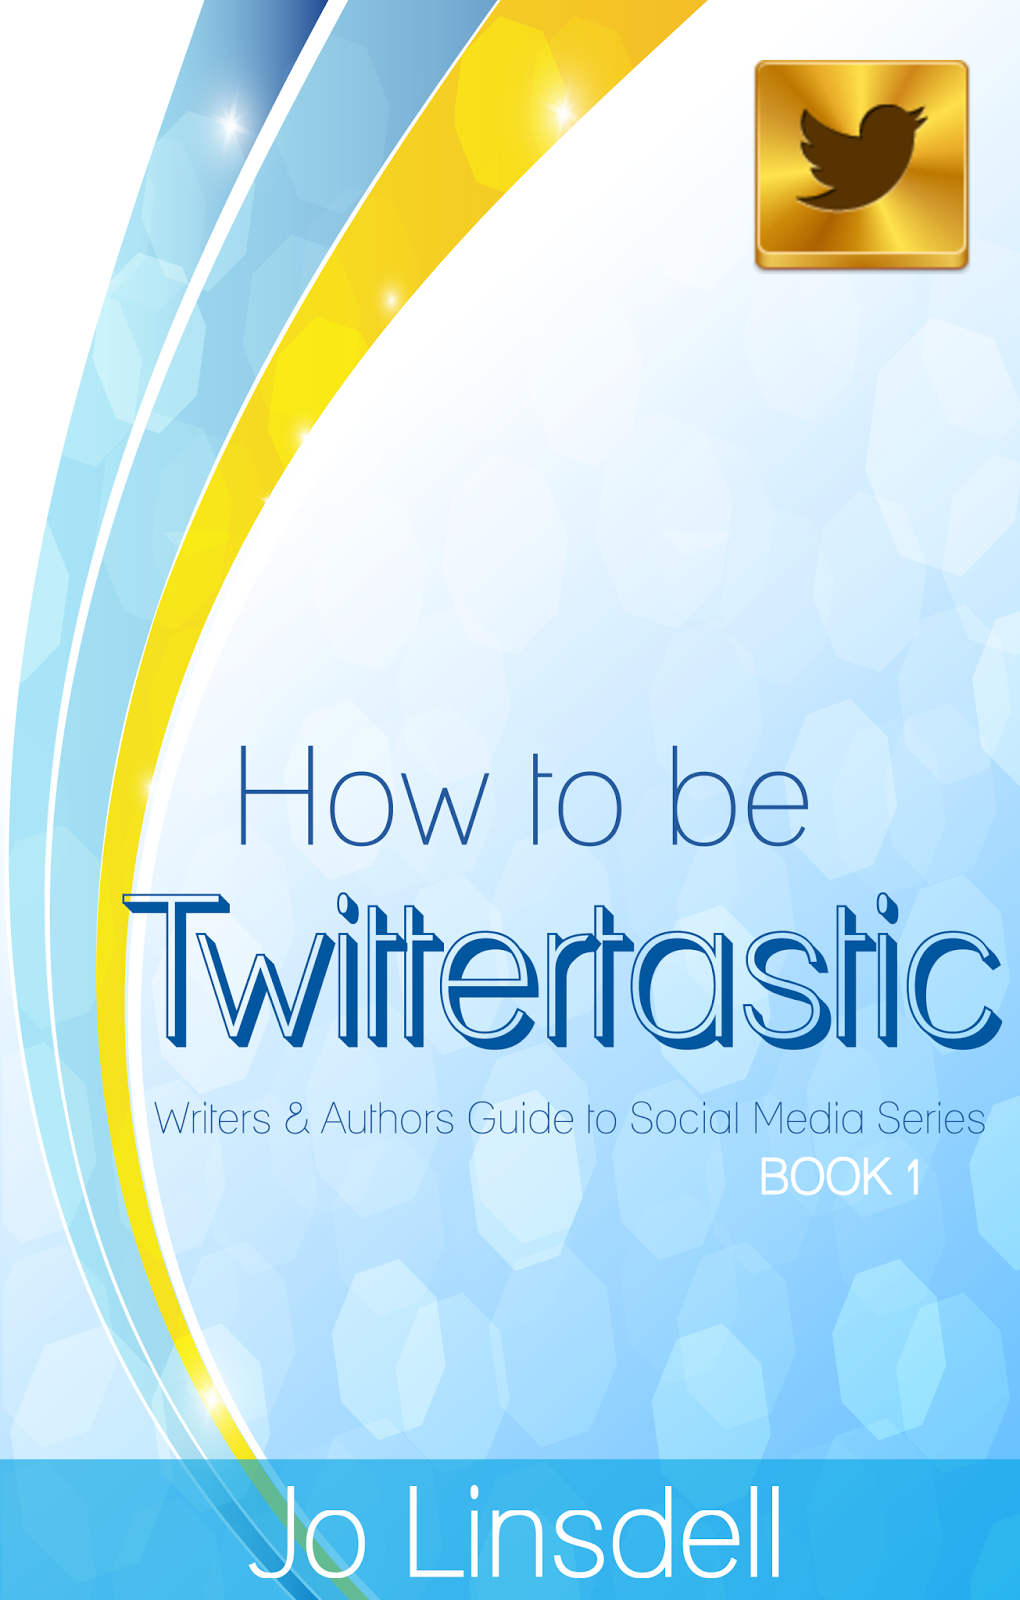 How to be Twittertastic by Jo Linsdell